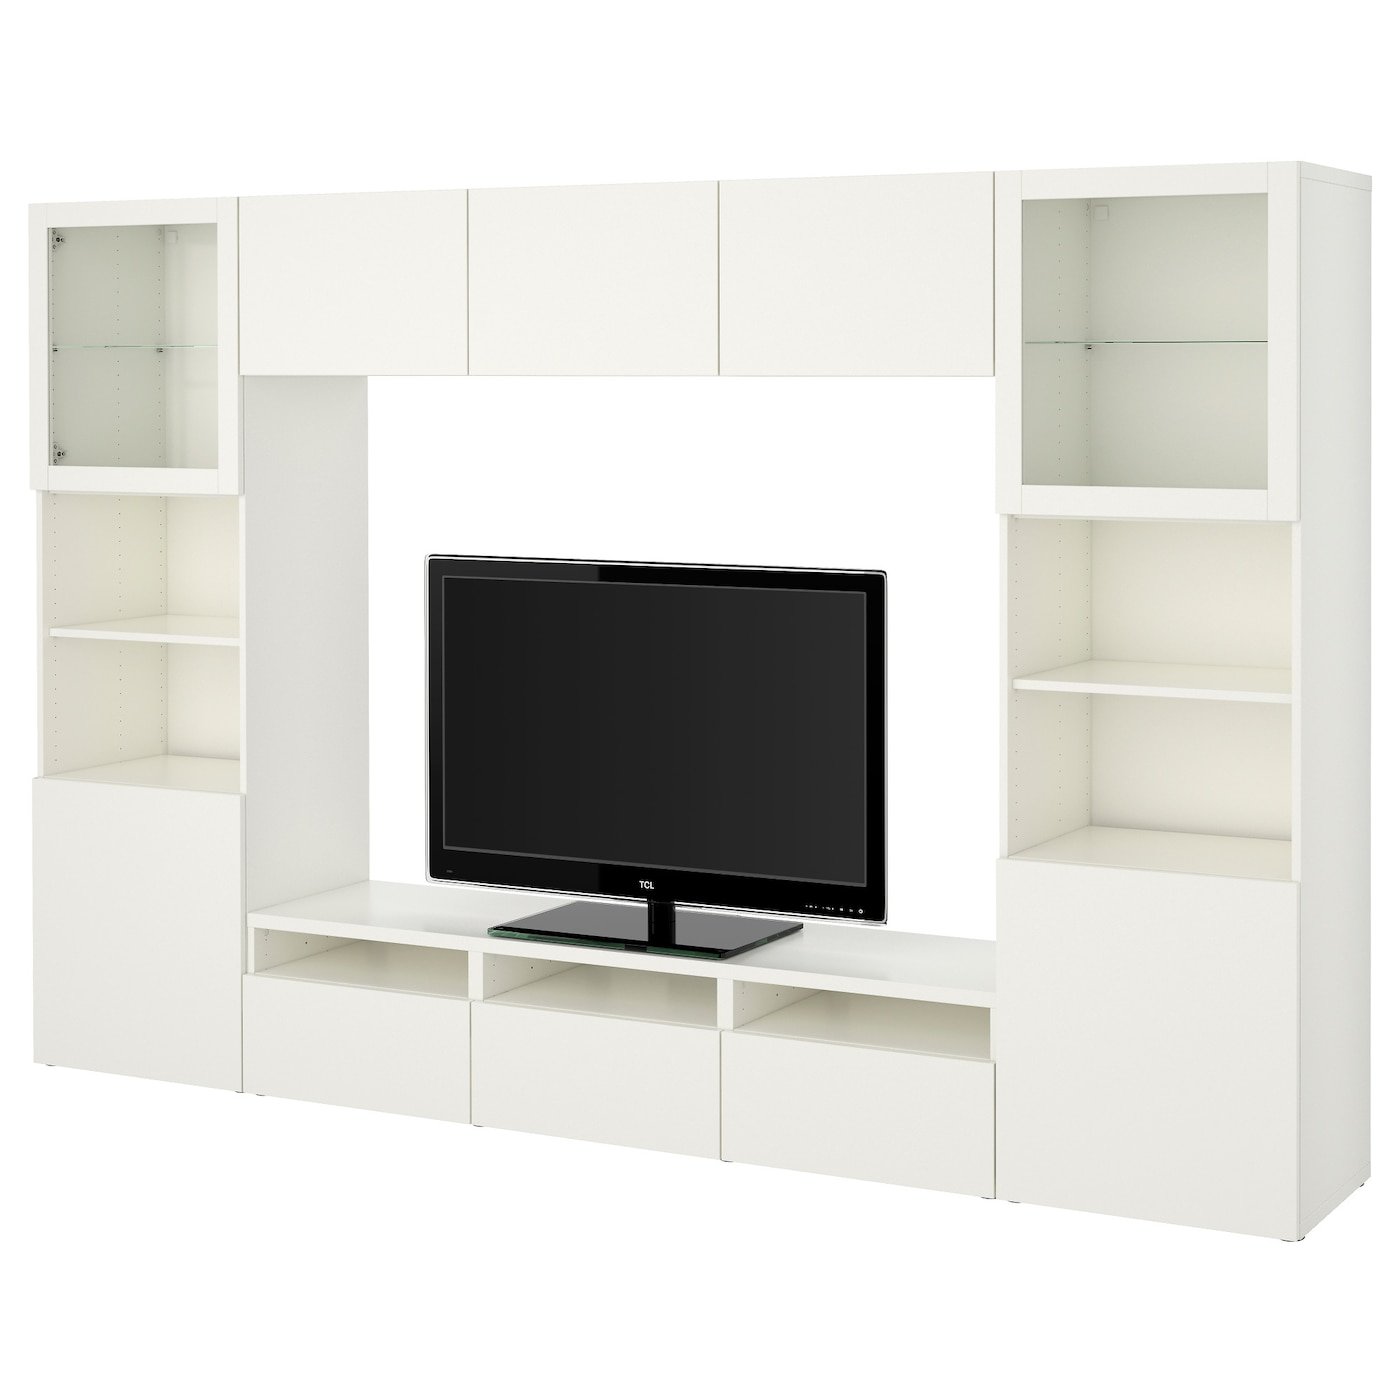 best tv storage combination glass doors lappviken sindvik white clear glass 300x40x192 cm ikea. Black Bedroom Furniture Sets. Home Design Ideas